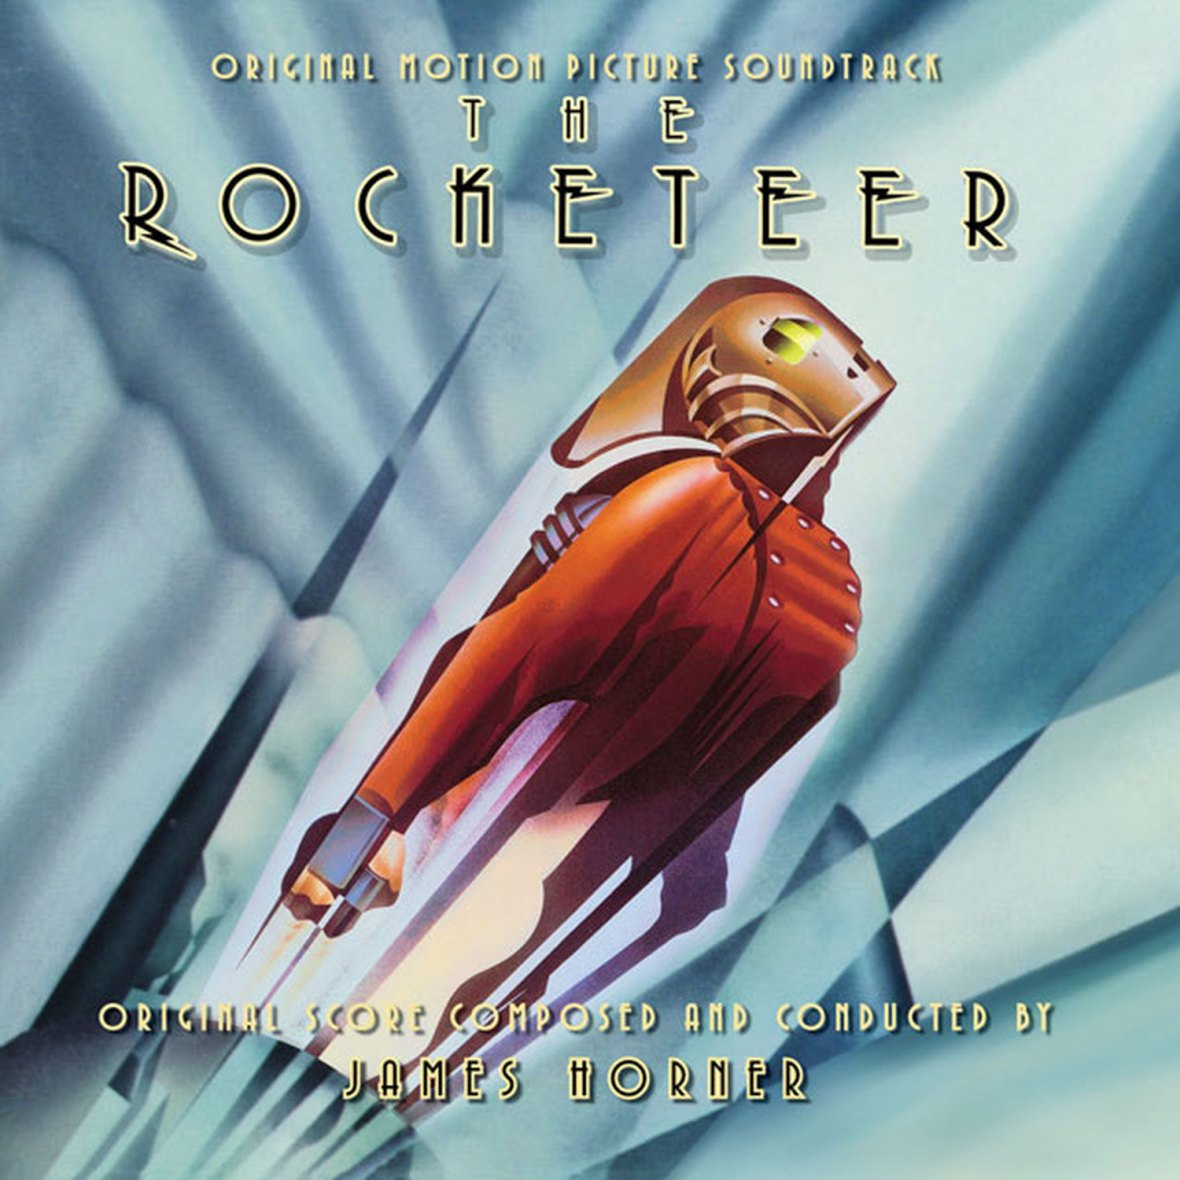 James Horner - The Rocketeer (Original Motion Picture Soundtrack) [ISCV 357]